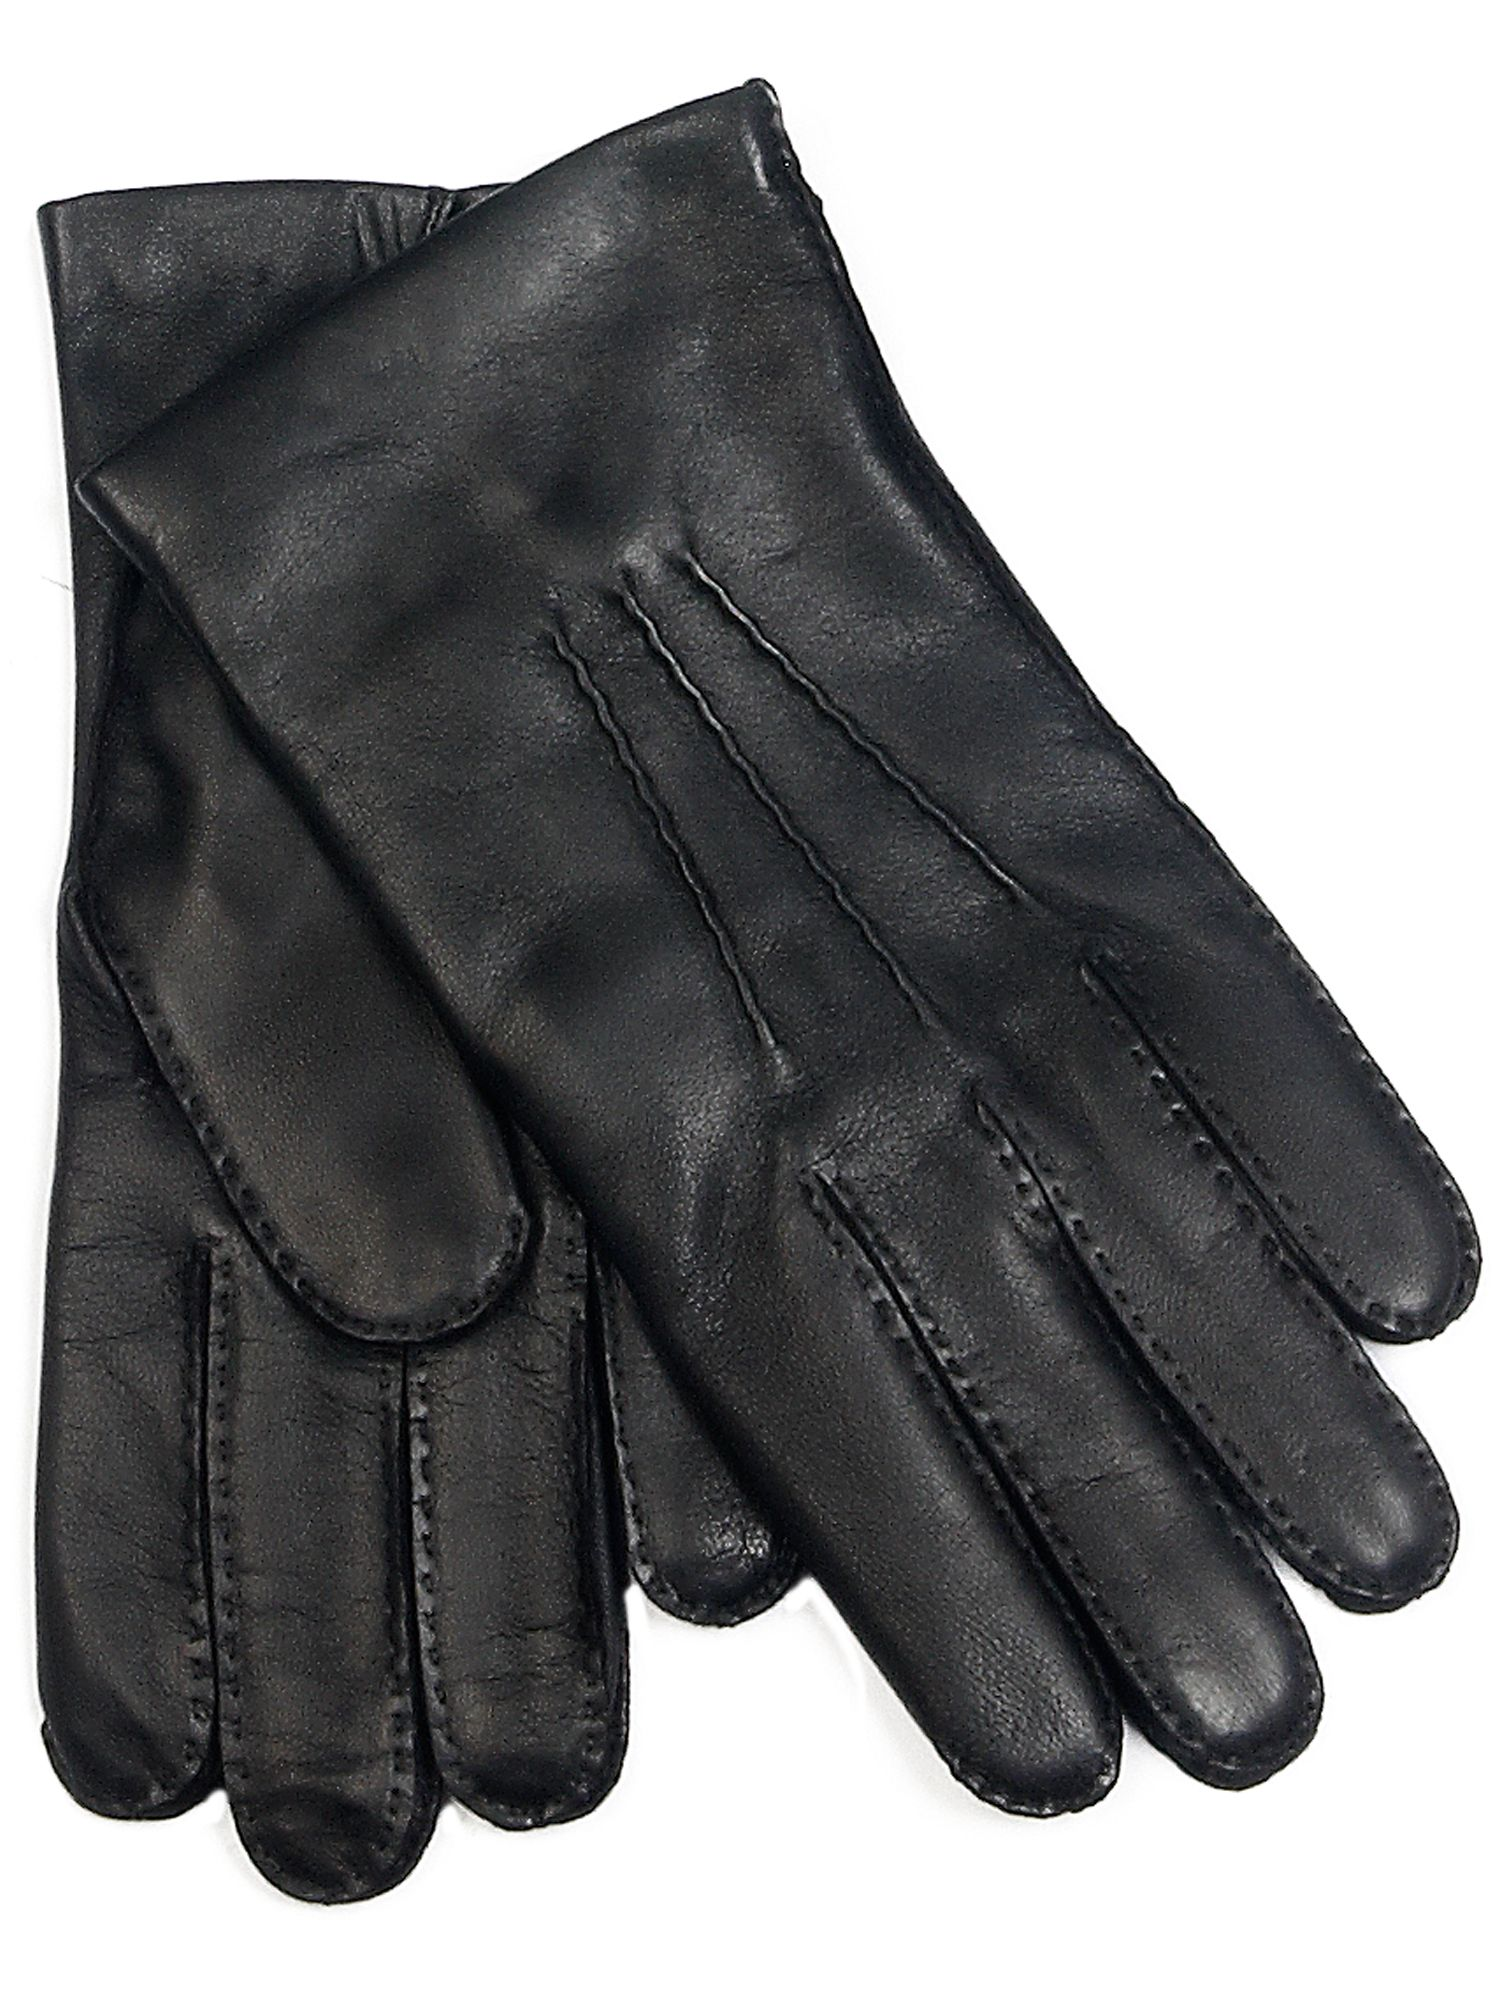 Oxford stitched detailed gloves